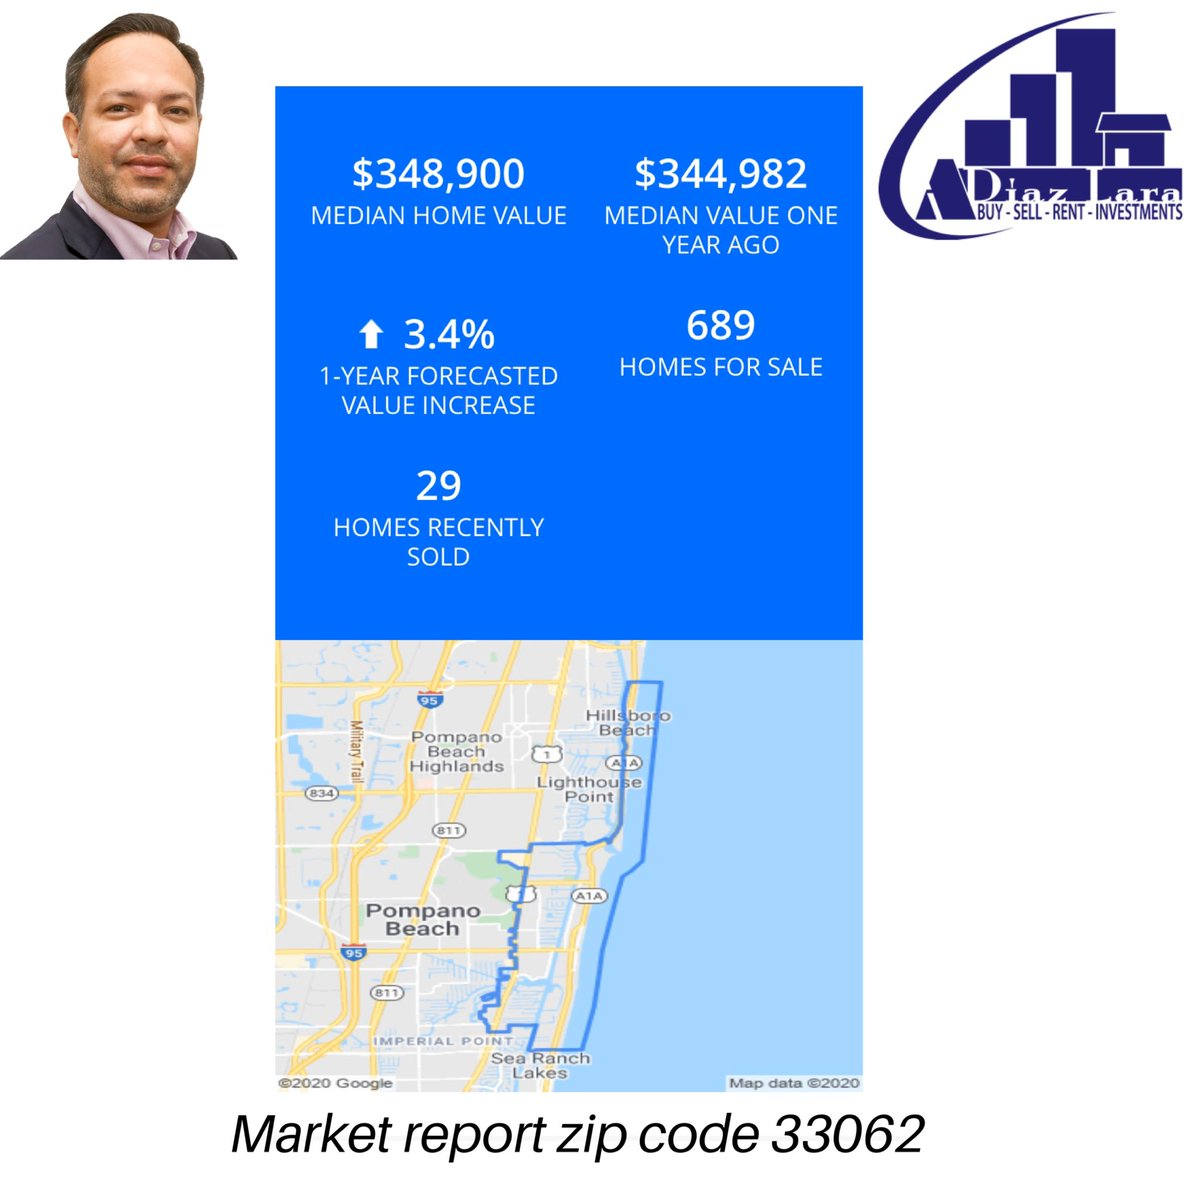 Pompano Beach Market Report! Zip code 33062. If you want to sell buy or invest in Pompano Beach call or text me. Be represented by a realtor that knows the market. http://www.adiazlara.realtor   #RealEstate #pompanobeach #realestateinvesting pic.twitter.com/INBxQjZA8O